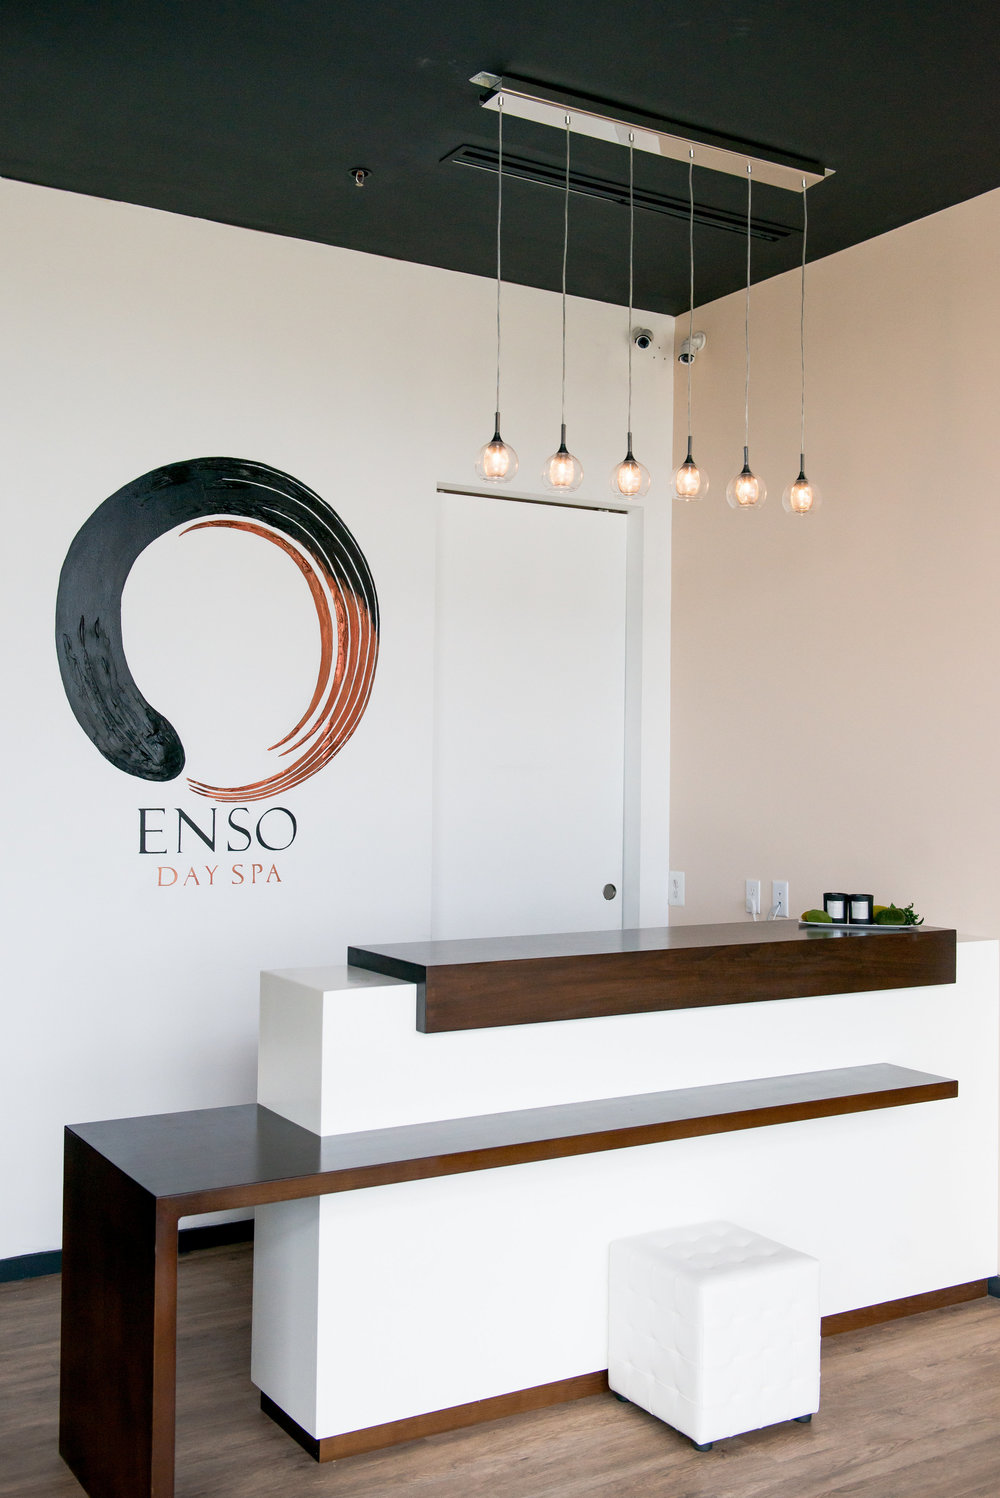 Enso Day Spa Reception Desk